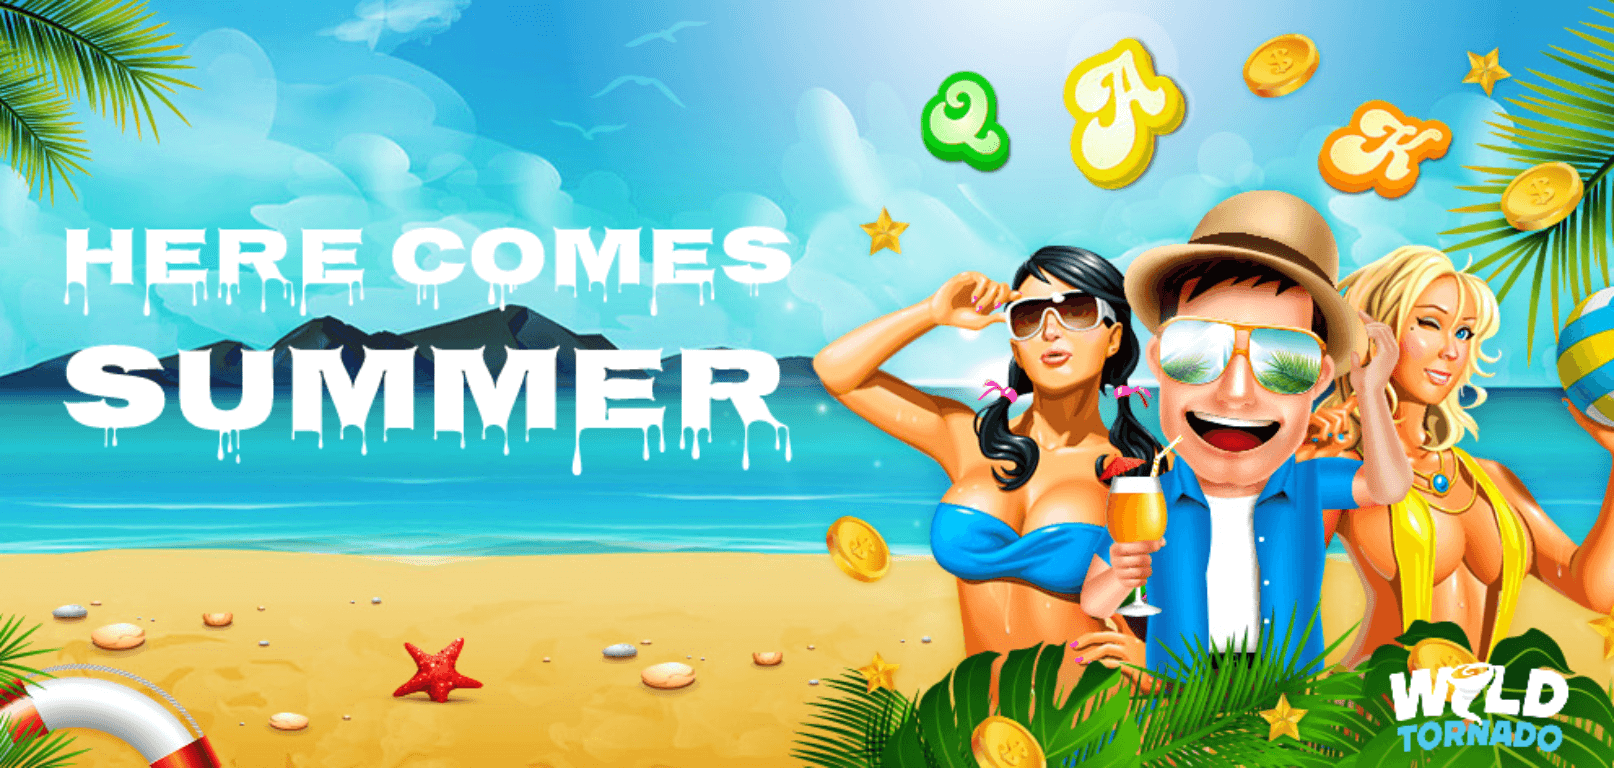 Here Comes Summer Makes For An Ideal Slots Summer Treat